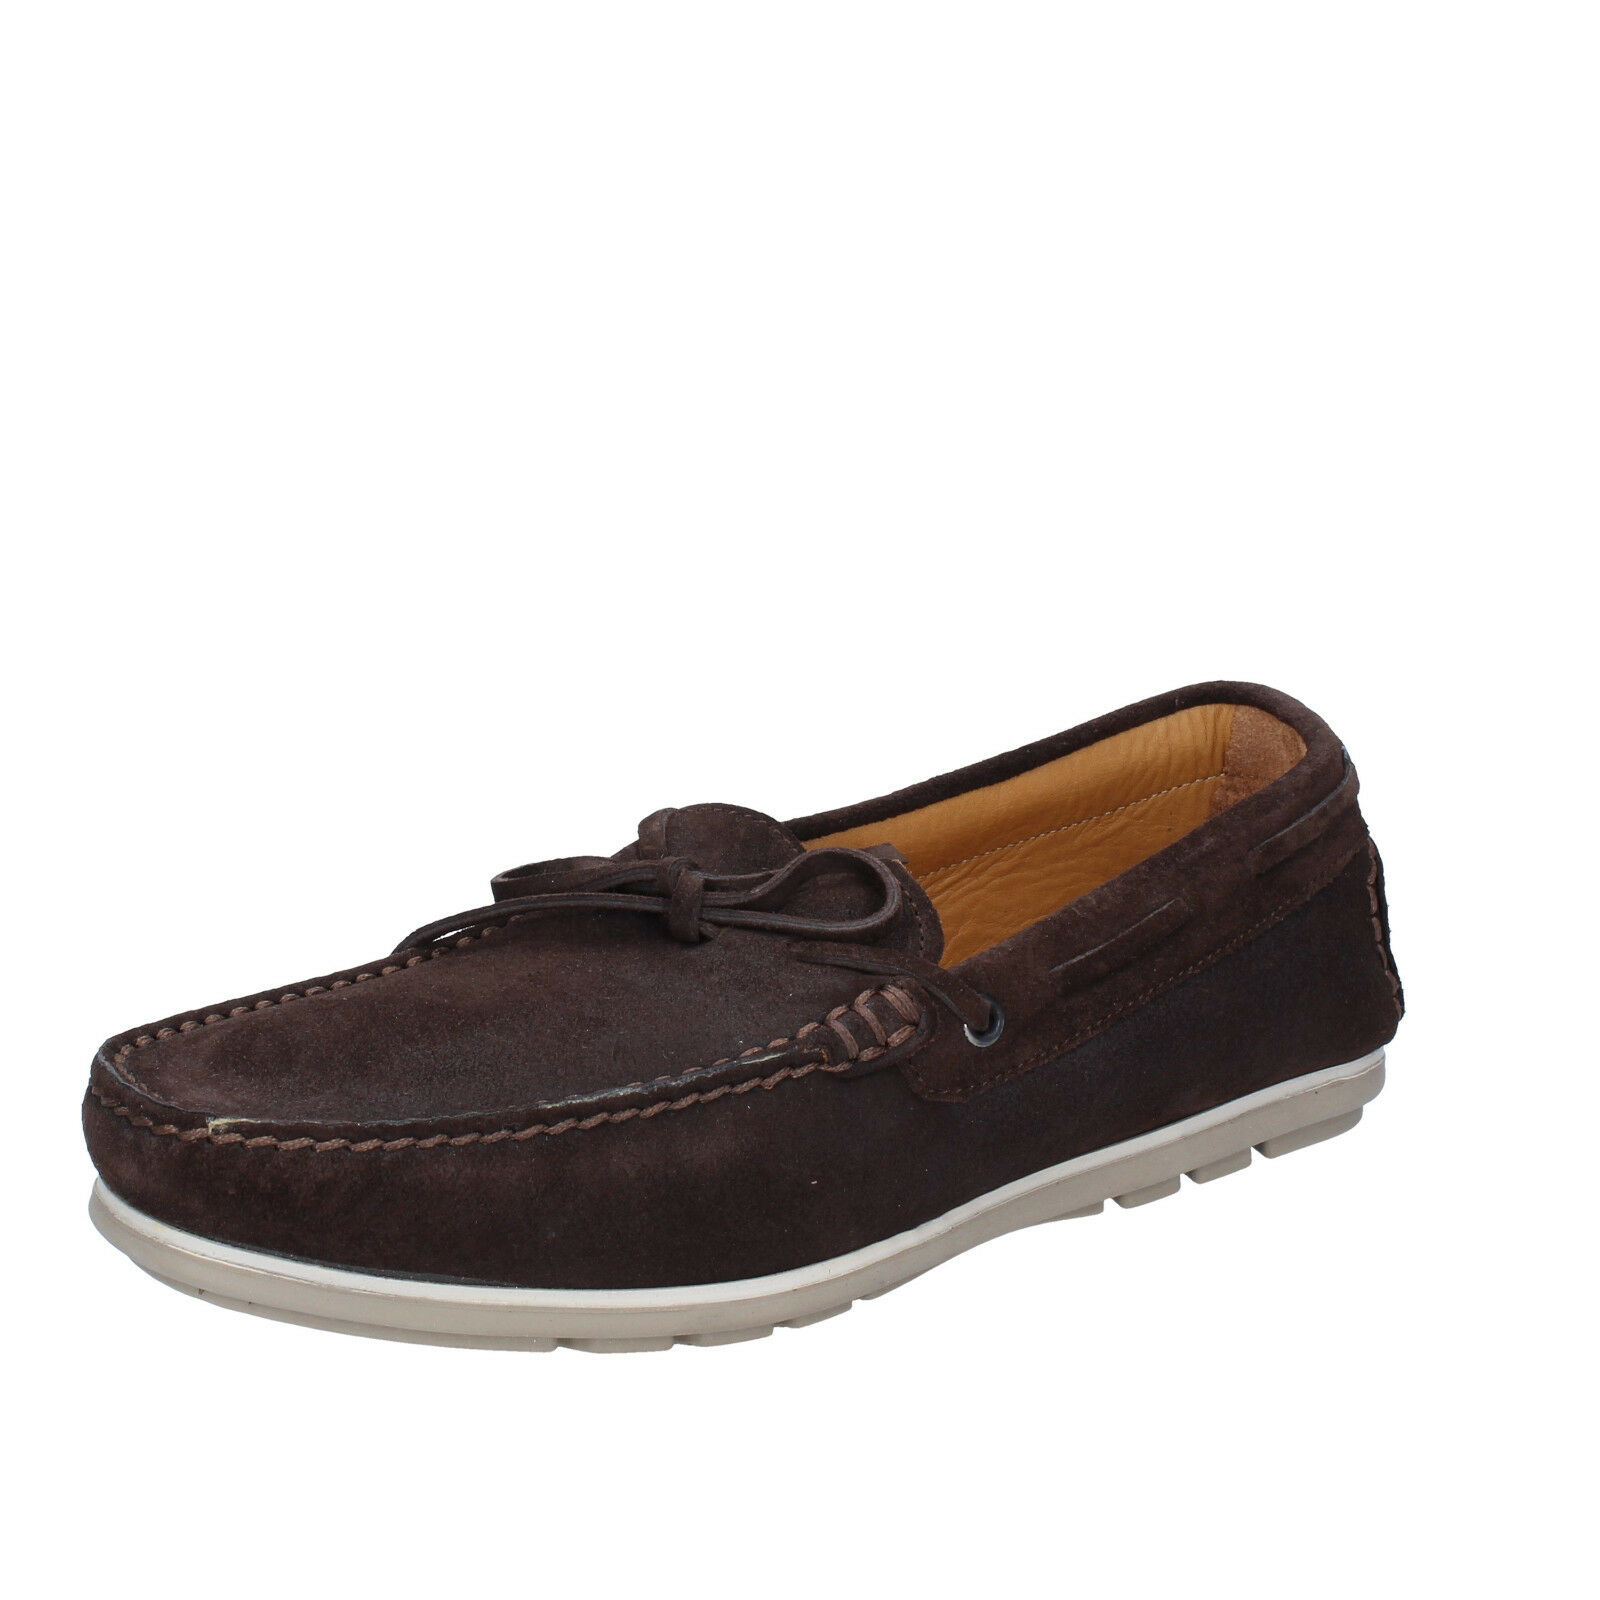 Men's shoes K852 & SON 7 () loafers brown suede BT920-40